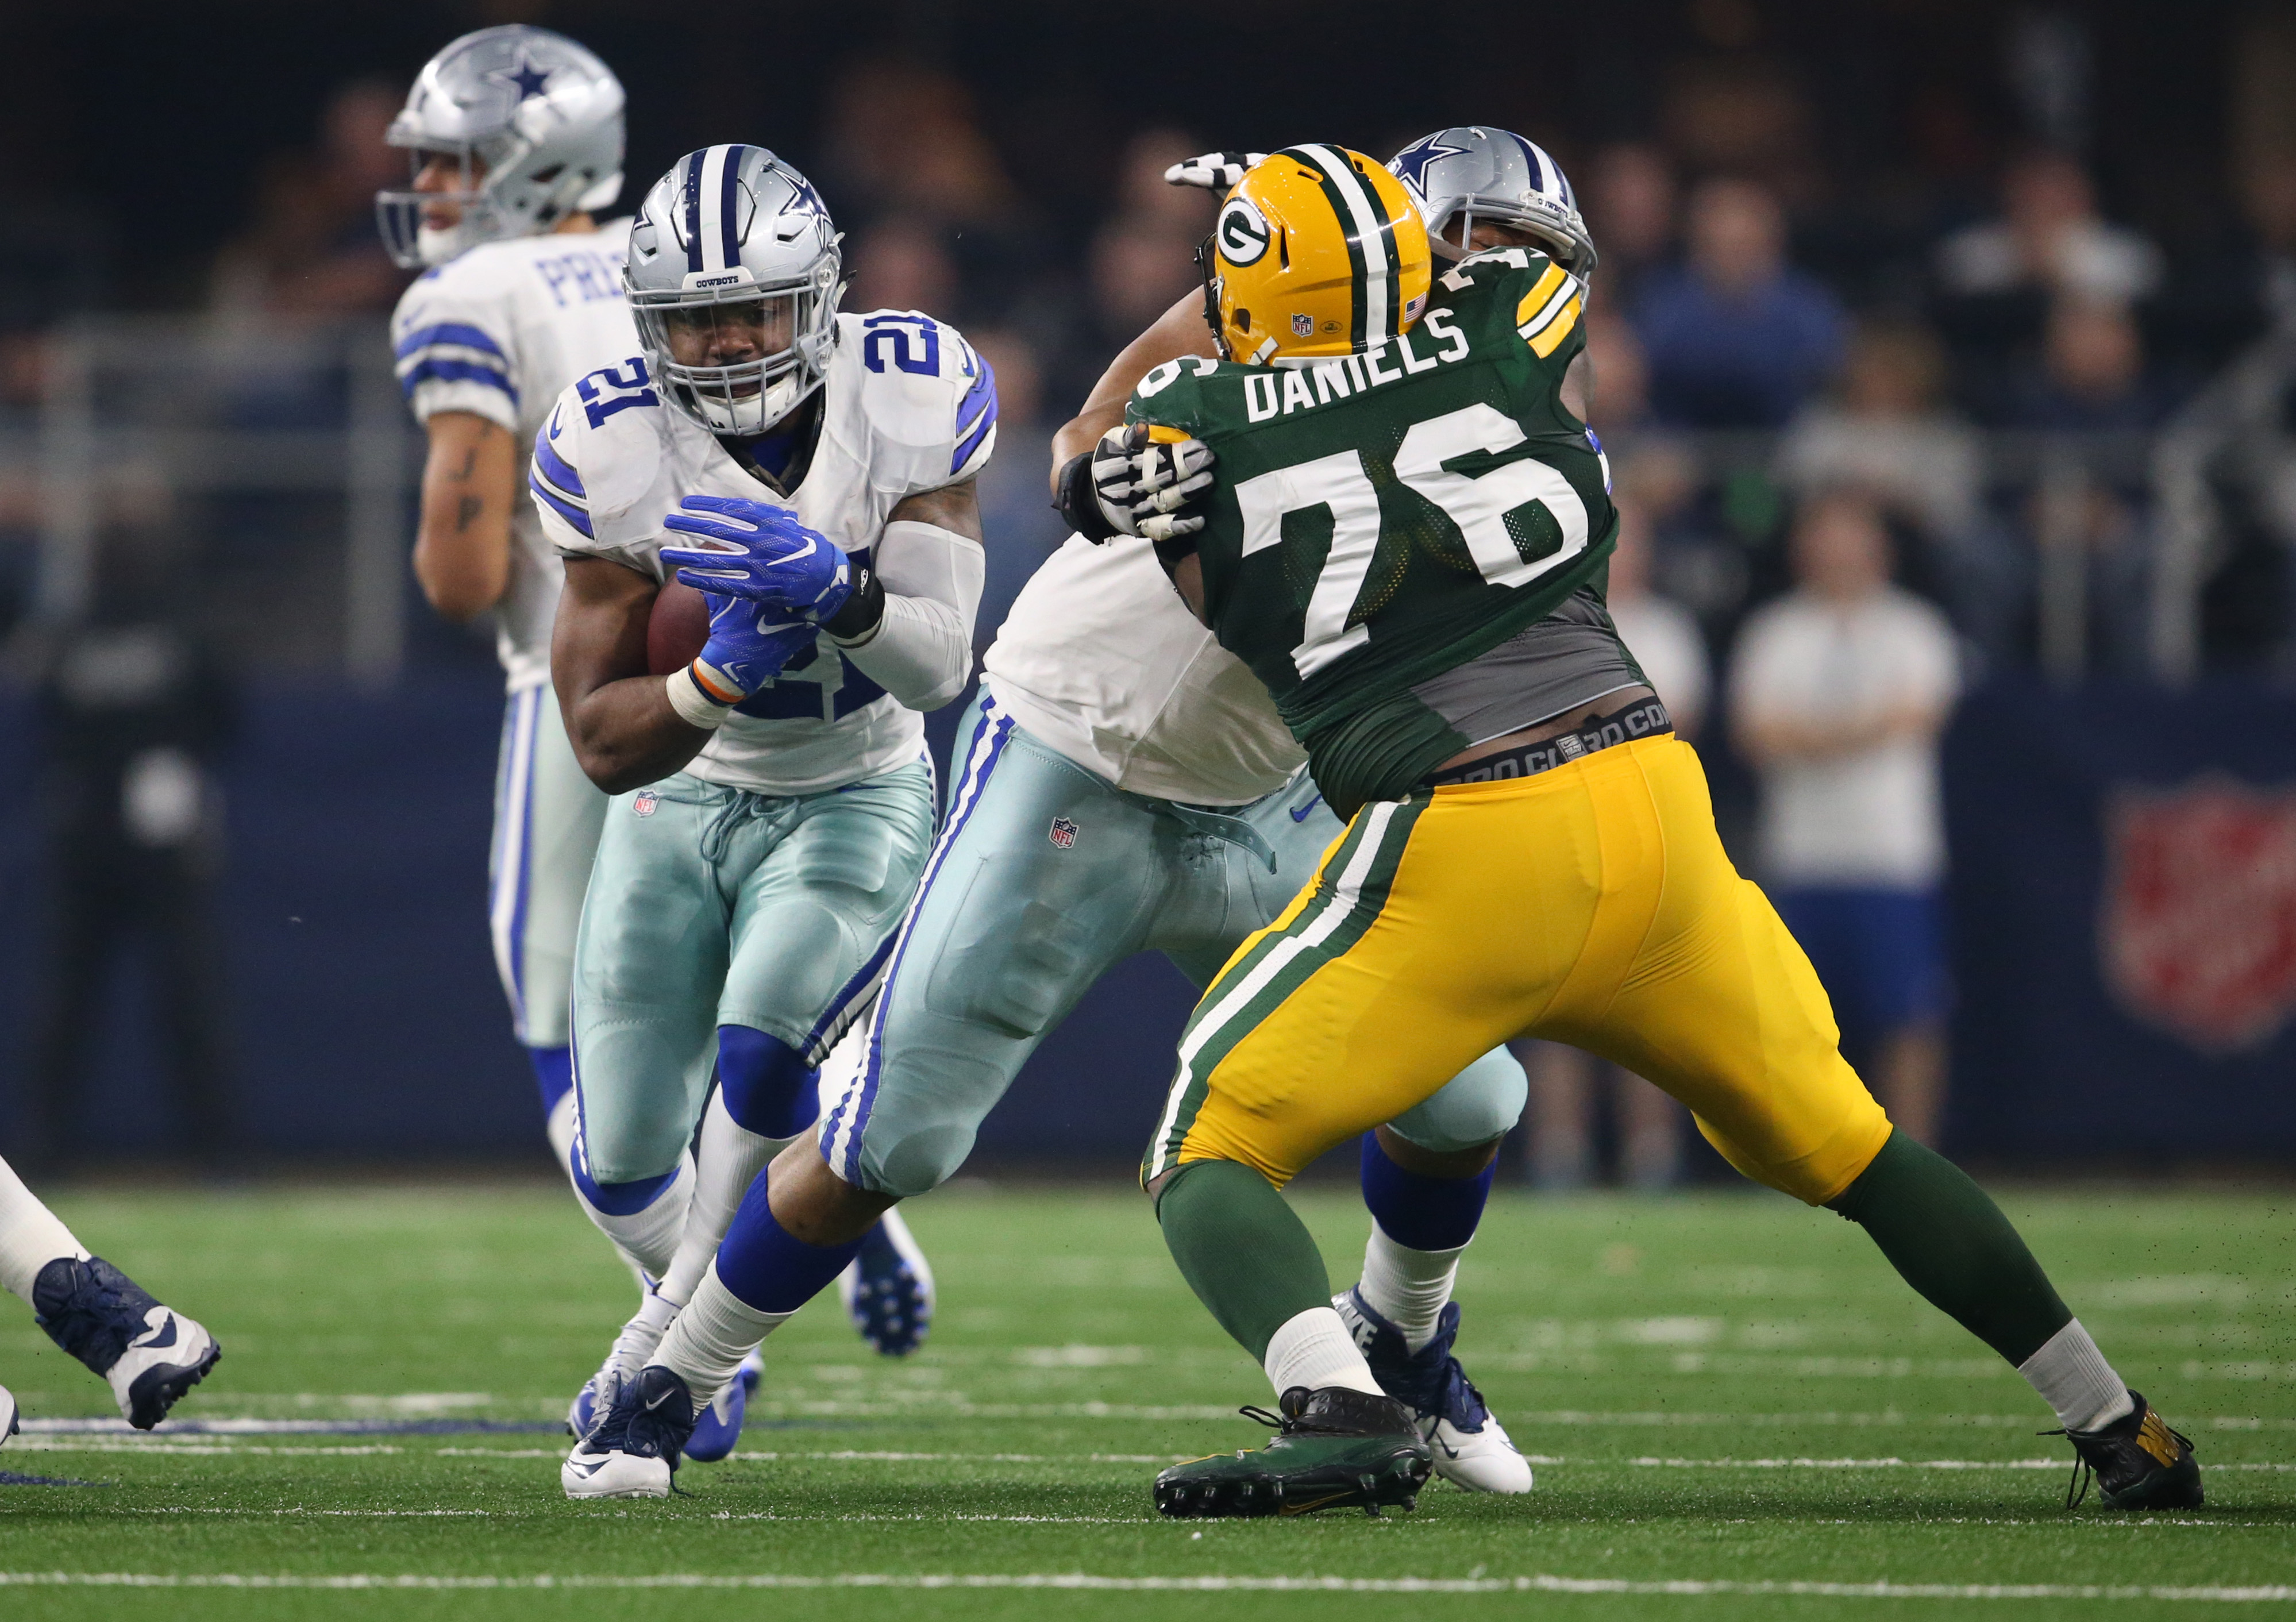 9814800-nfl-nfc-divisional-green-bay-packers-at-dallas-cowboys